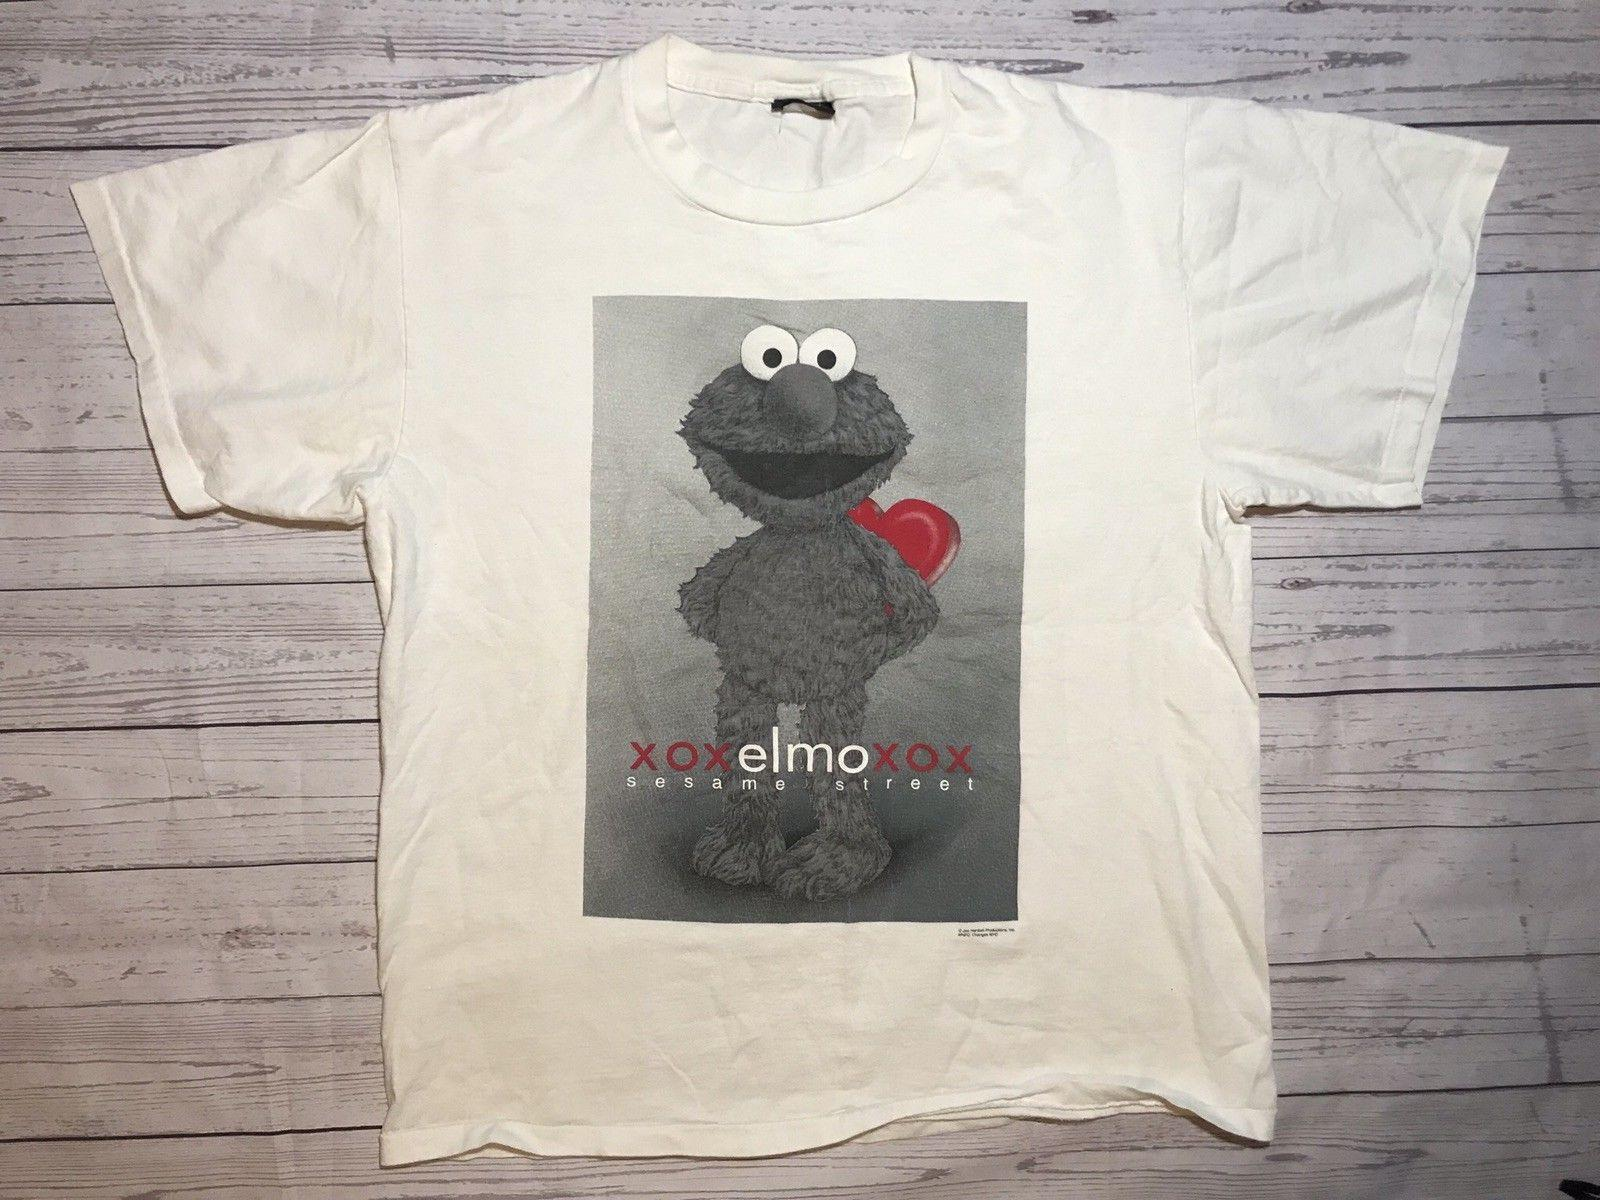 343249cad Vintage Elmo T Shirt Mens Xl Changes Tag Single Stitch Sesame Street 90s  Xoxo Men Women Unisex Fashion Tshirt T Shirt Slogans Dirty T Shirts From ...